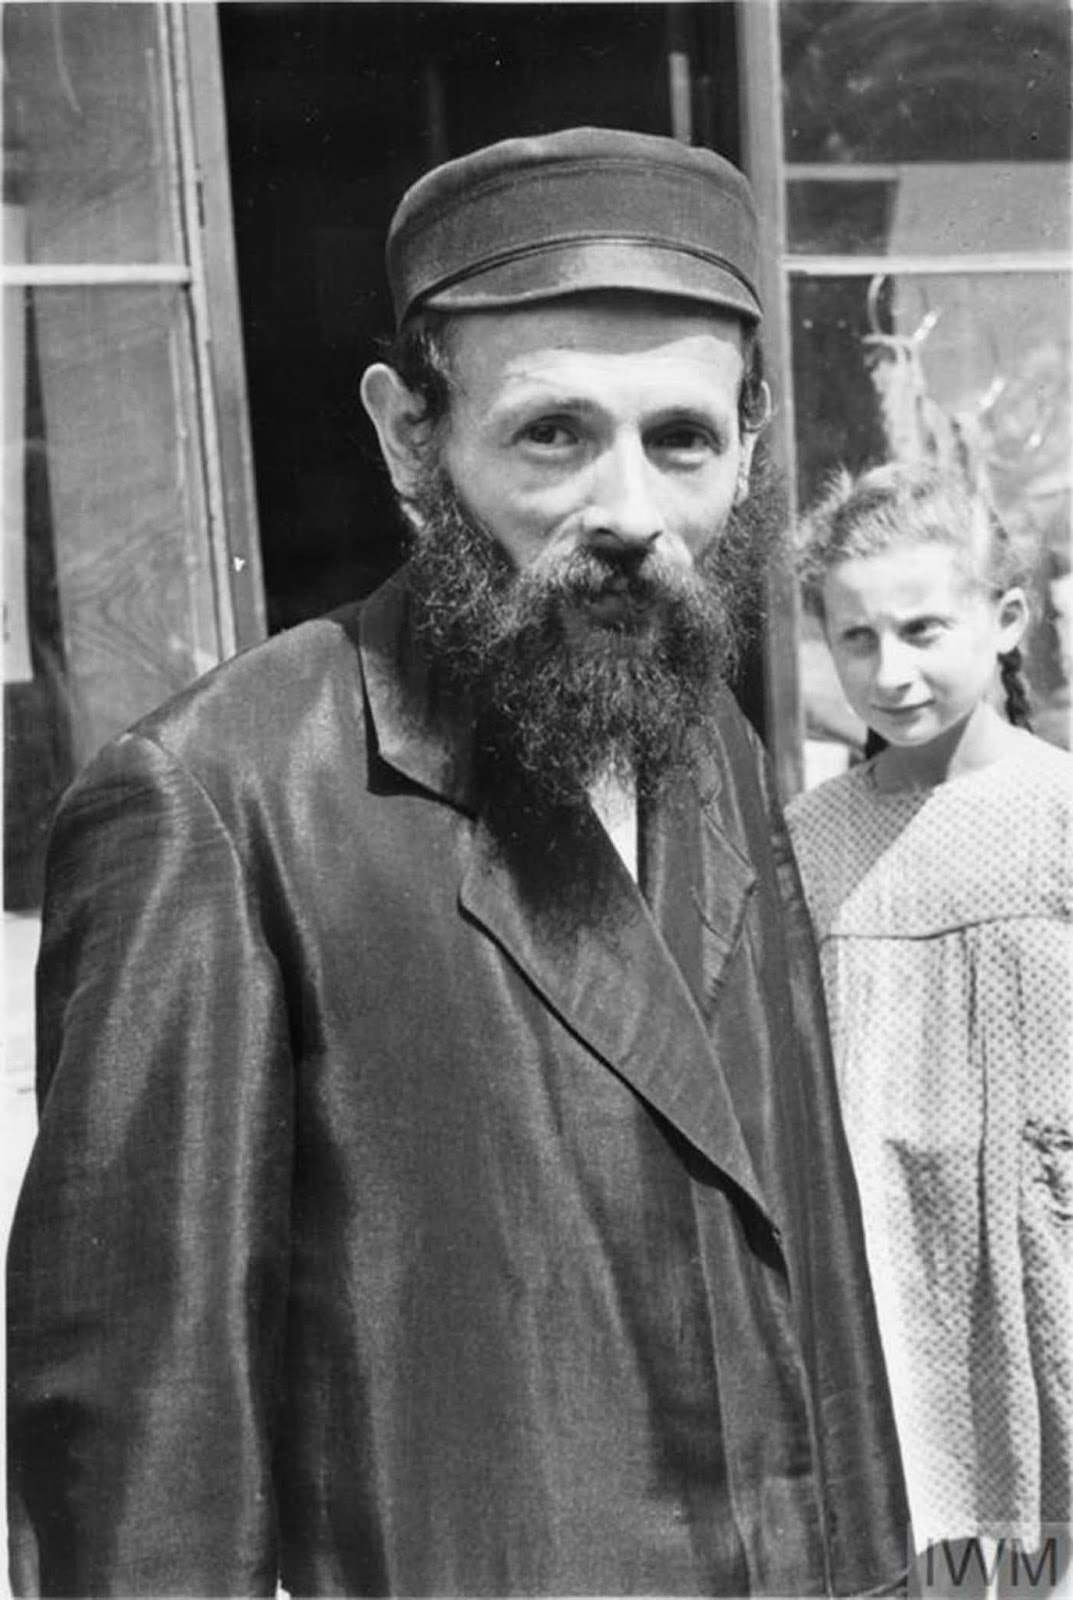 A Jewish man posing for the camera.